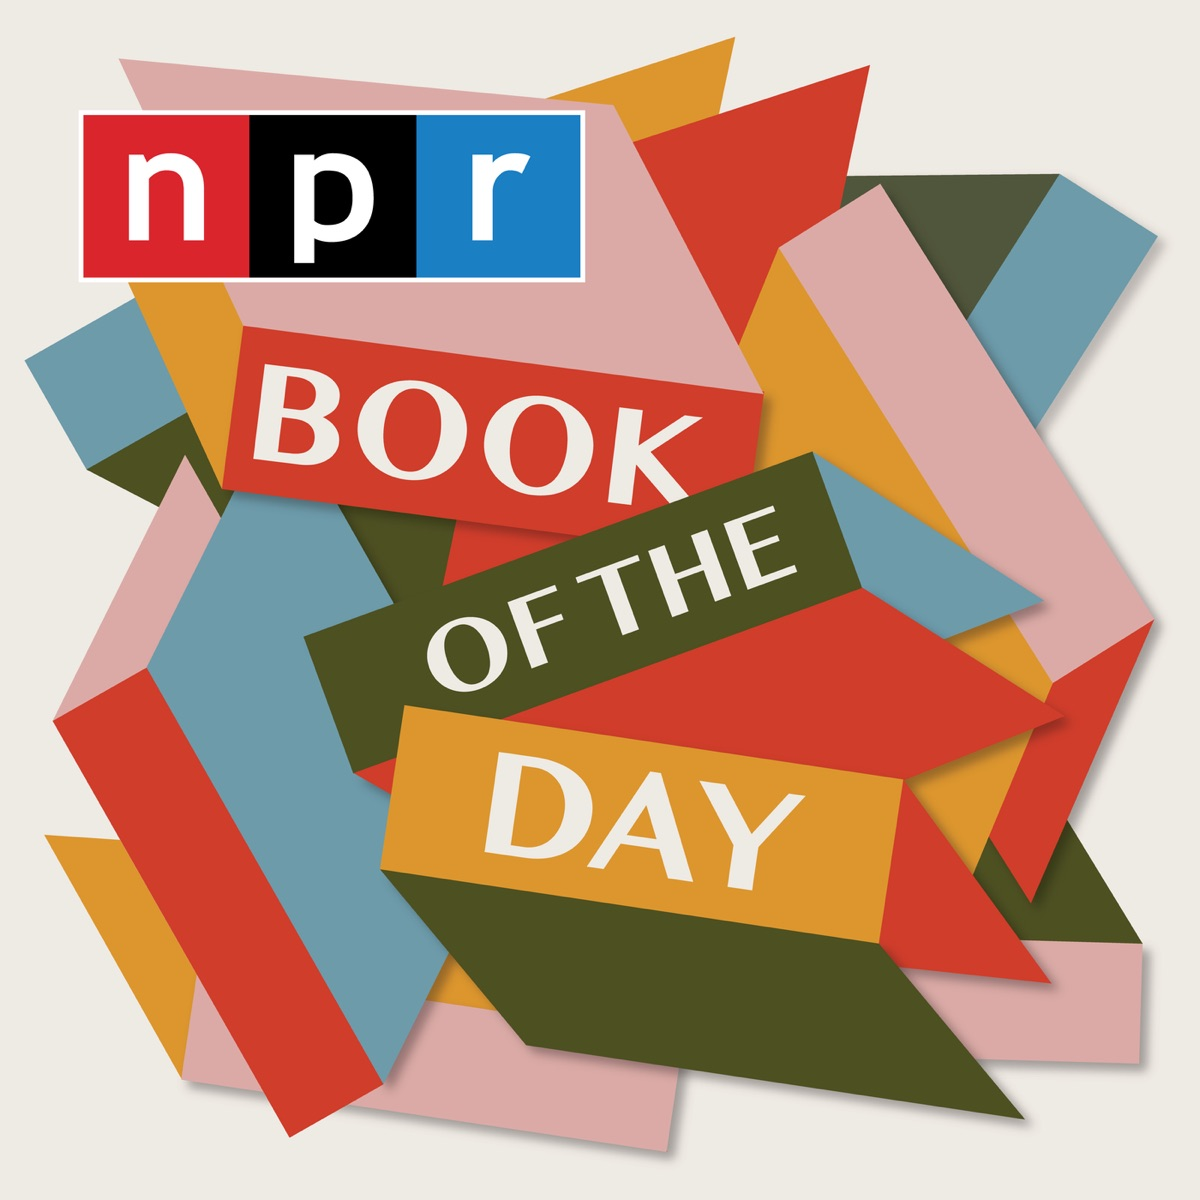 NPR's Book of the Day